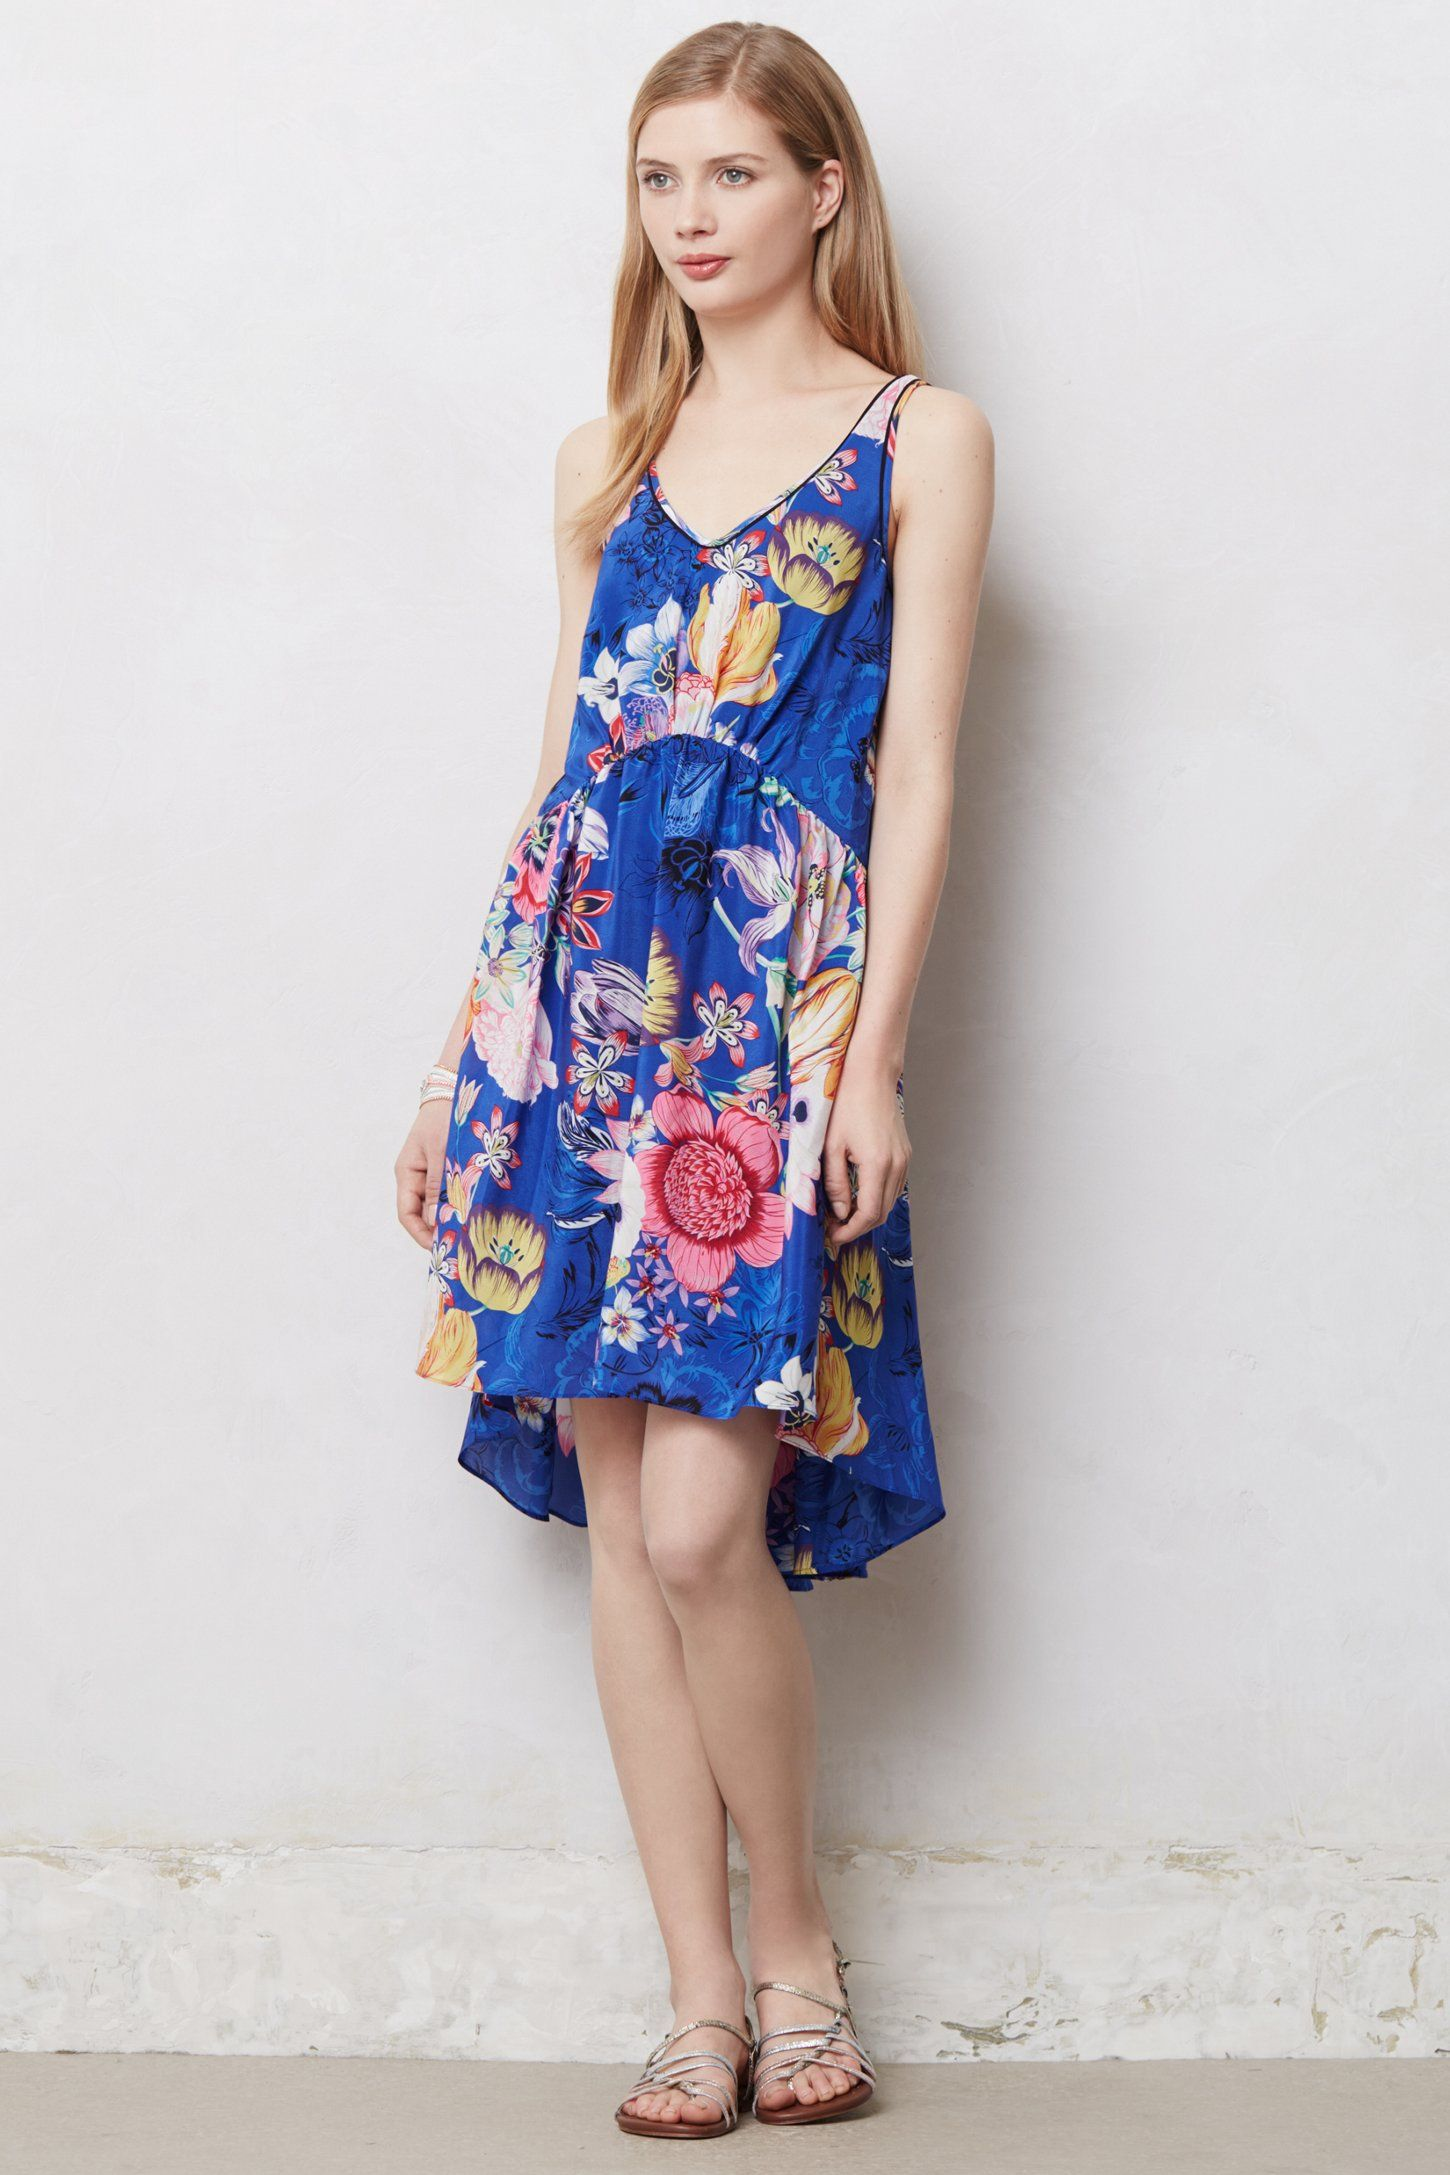 Passionflower High-Low Dress - Anthropologie.com